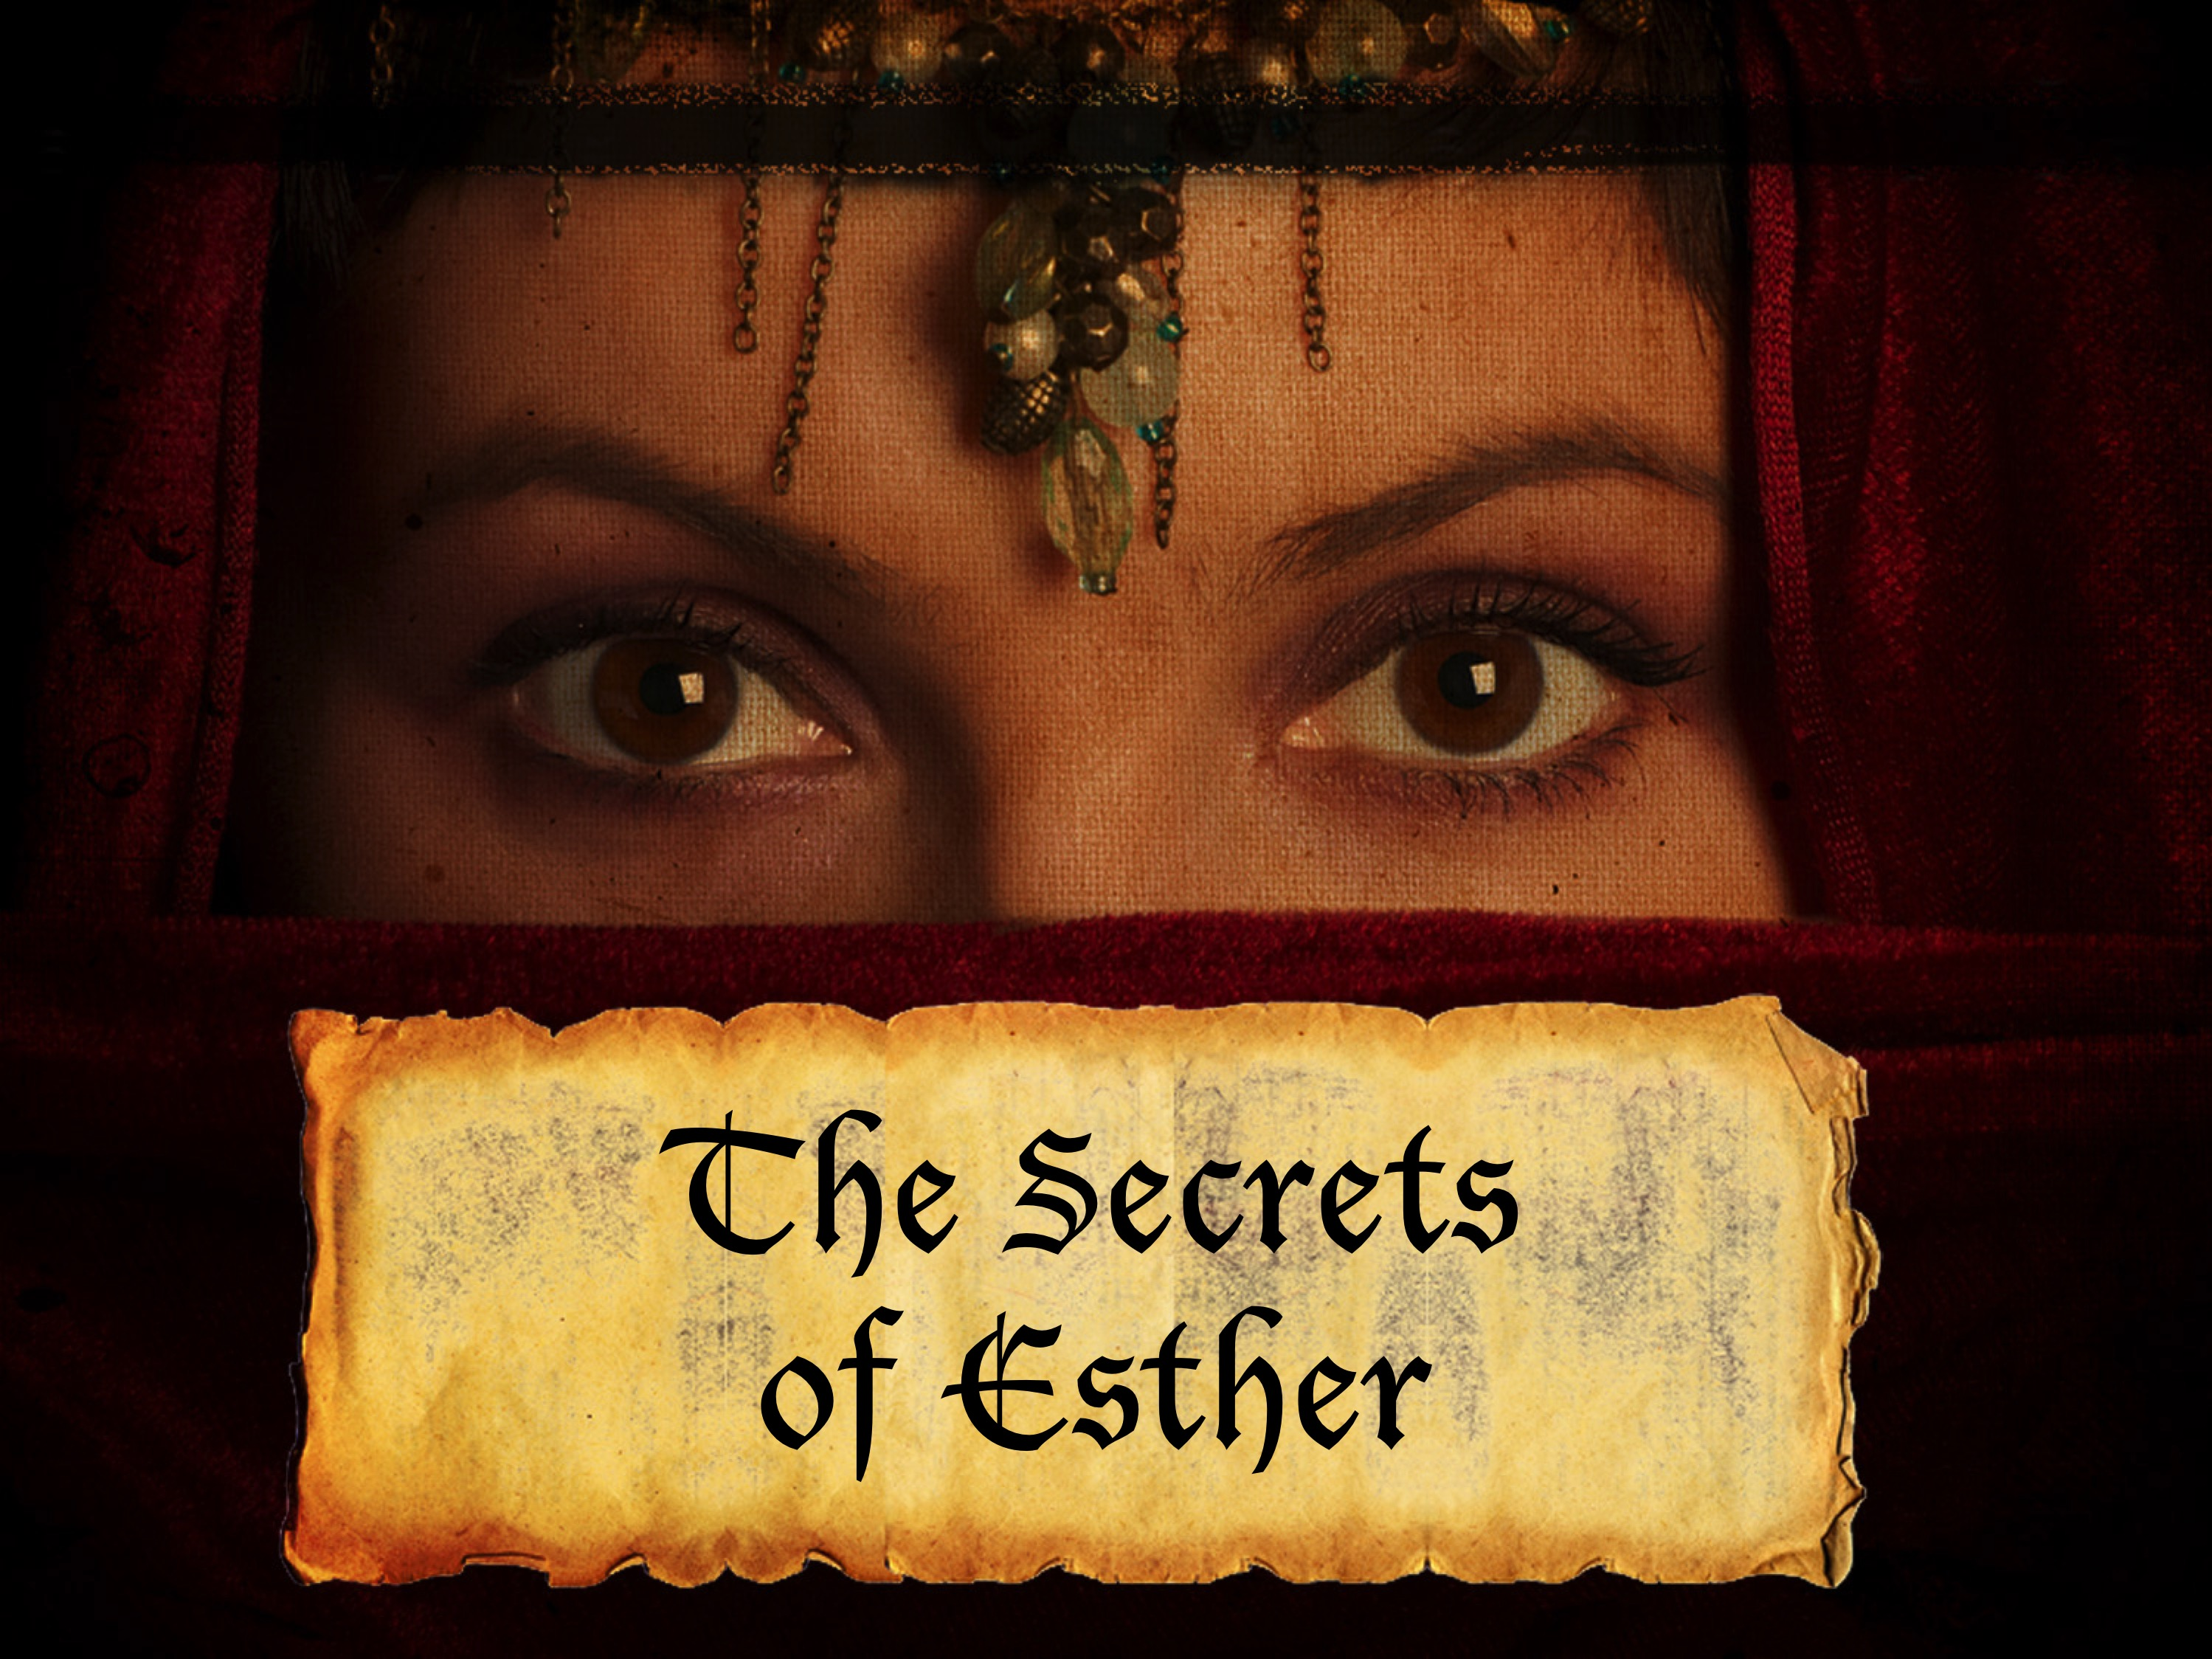 Esther's Secrets